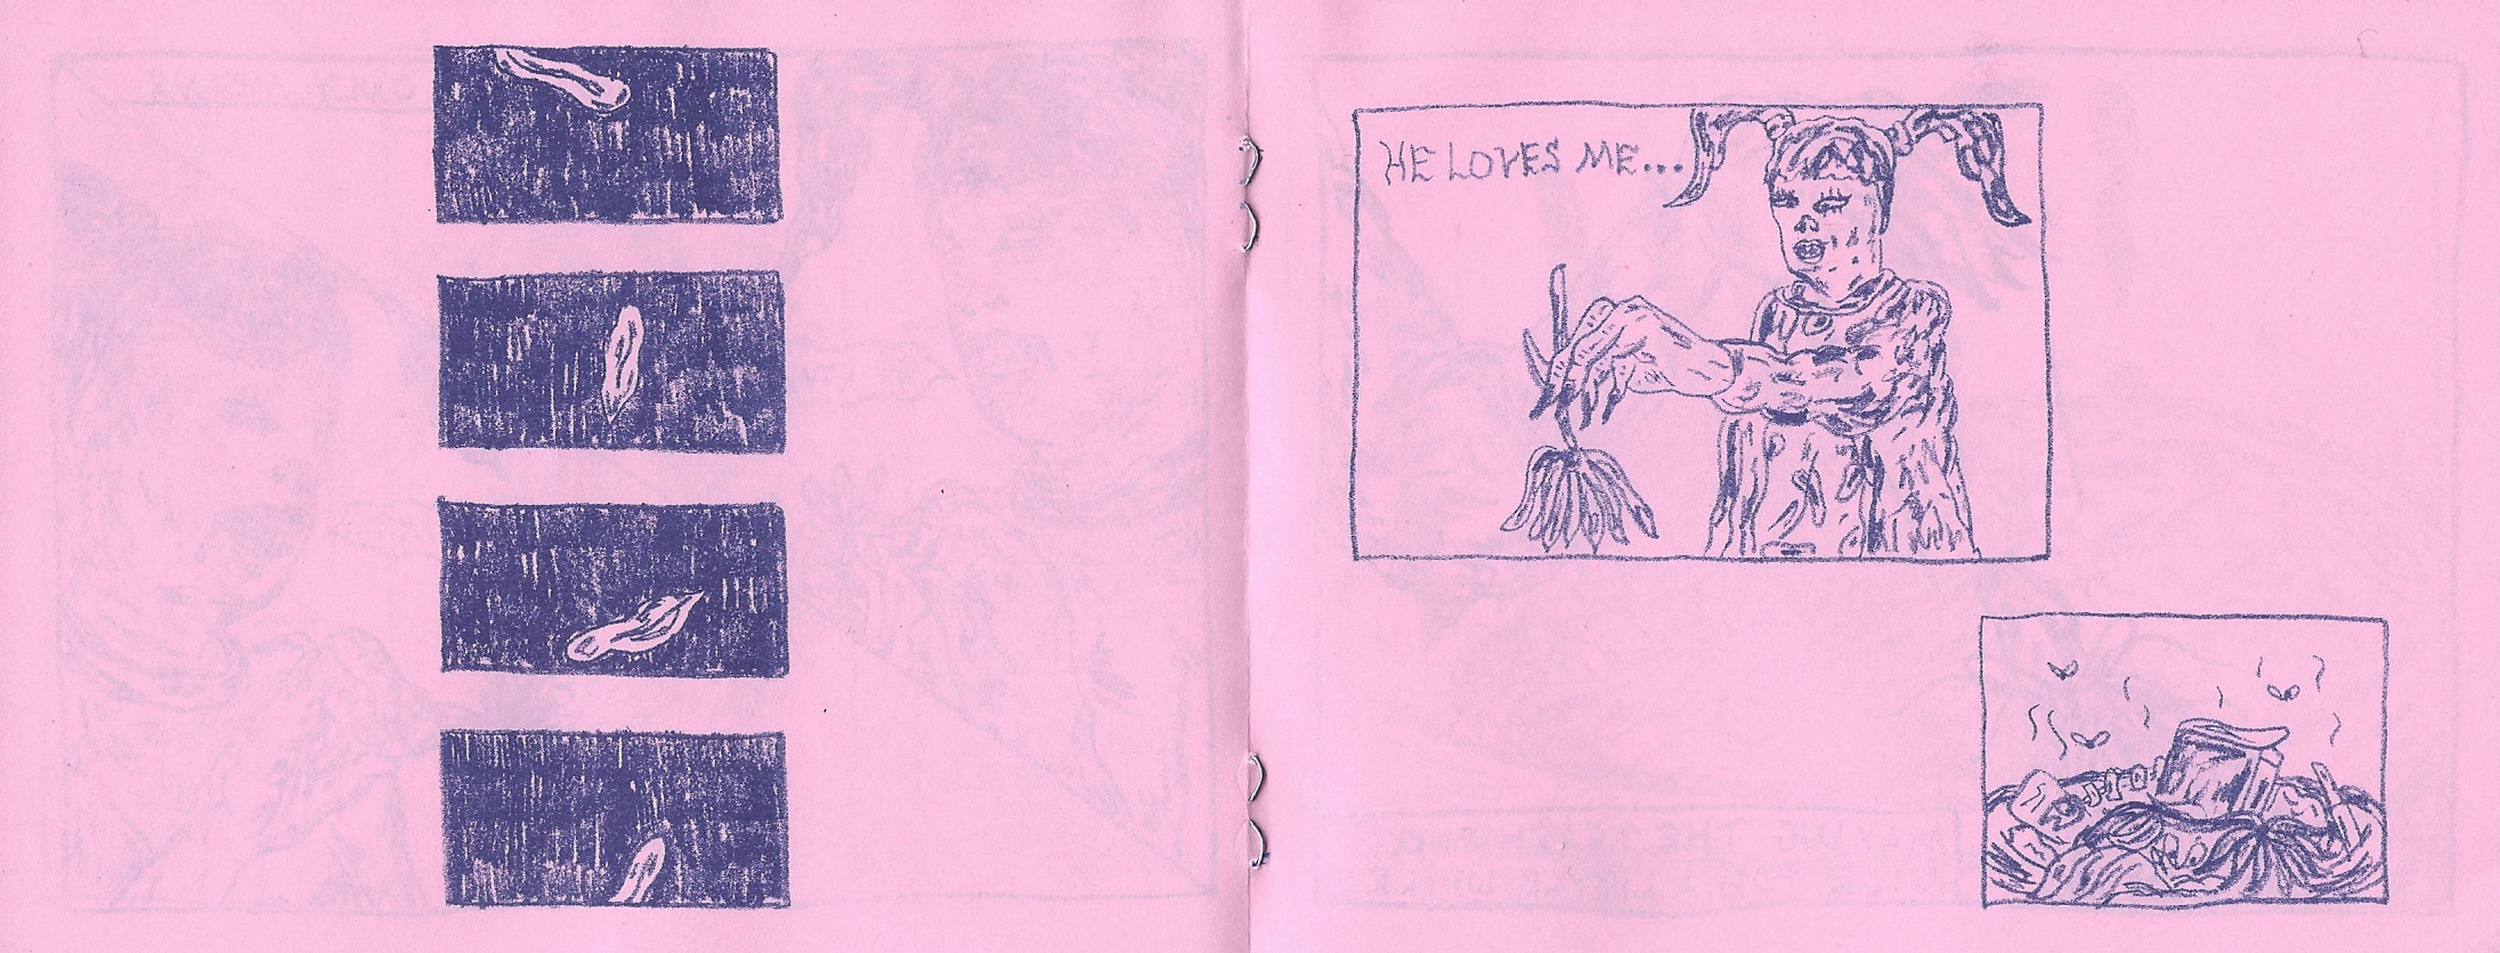 LOVE ME NOT page 3.jpg